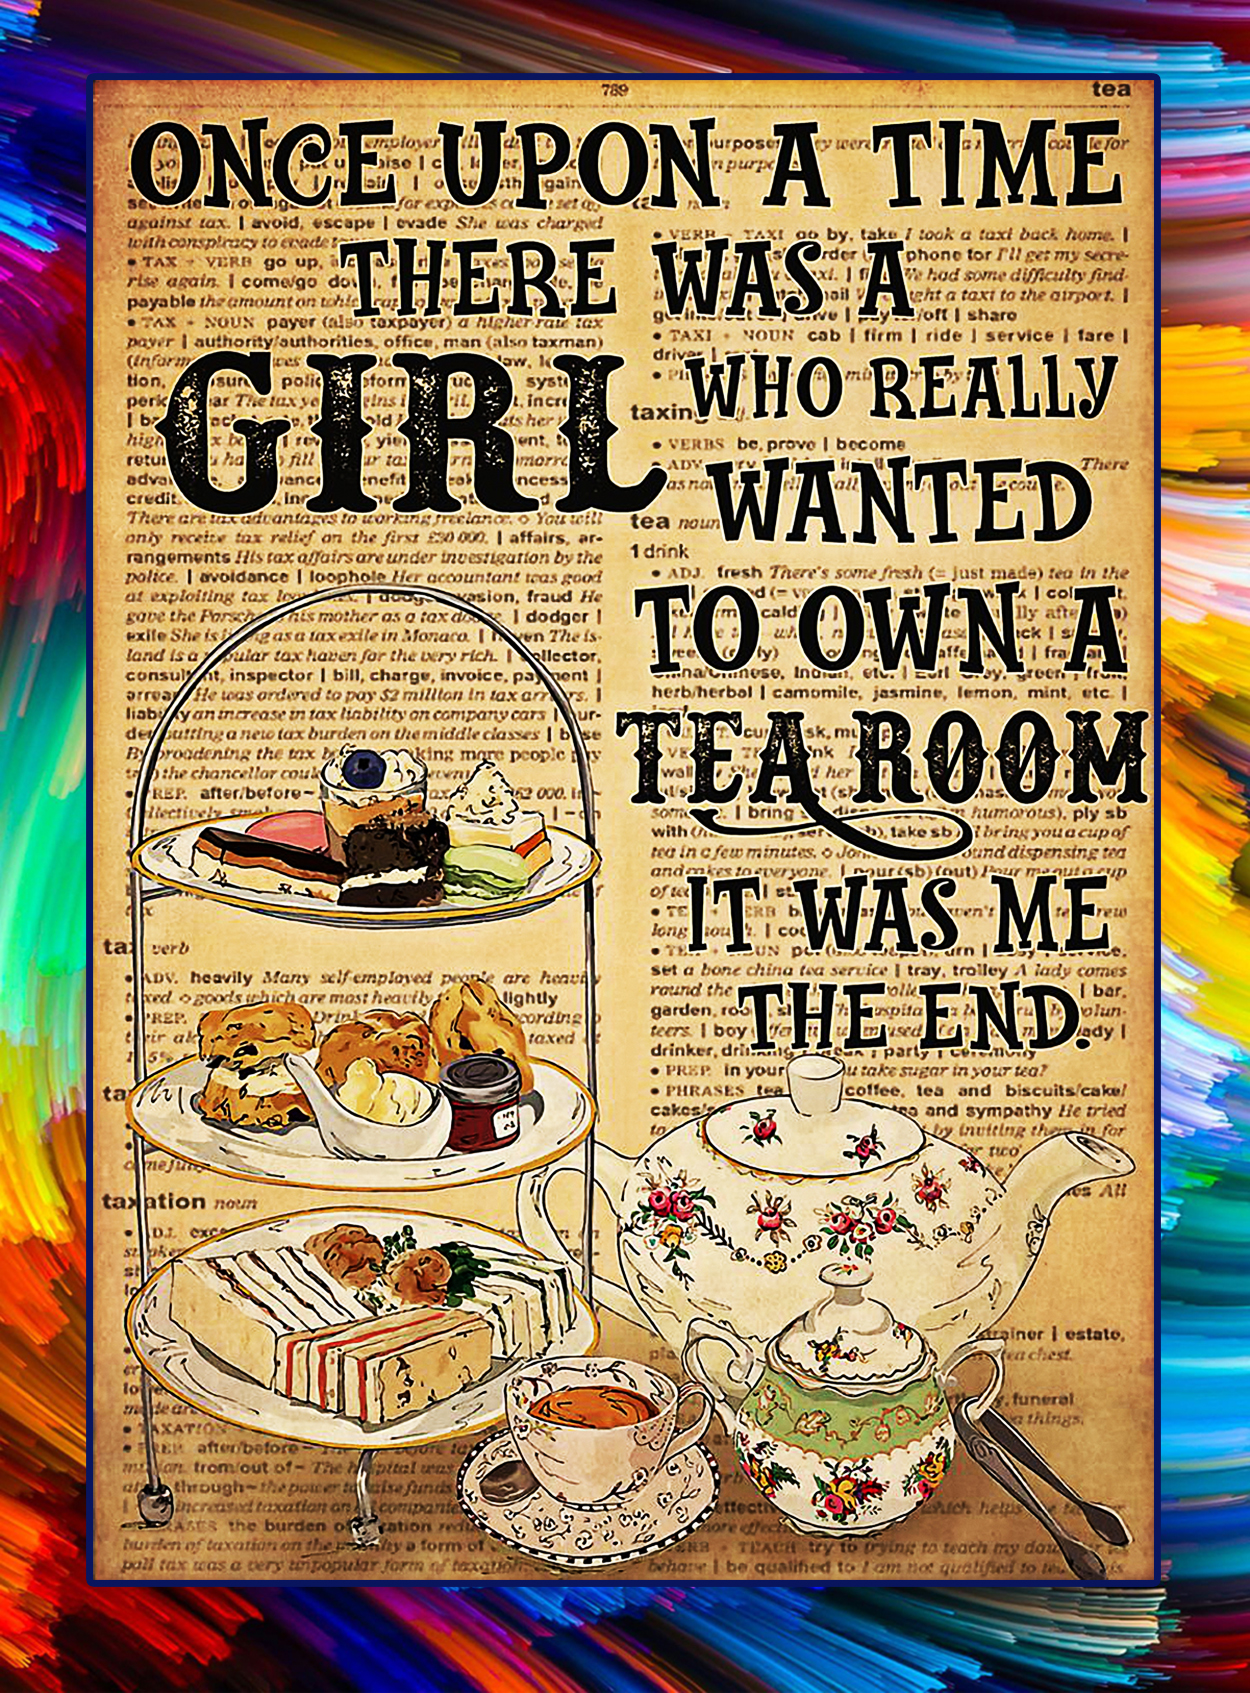 Once upon a time there was a girl who really wanted to own a tea room poster - A2